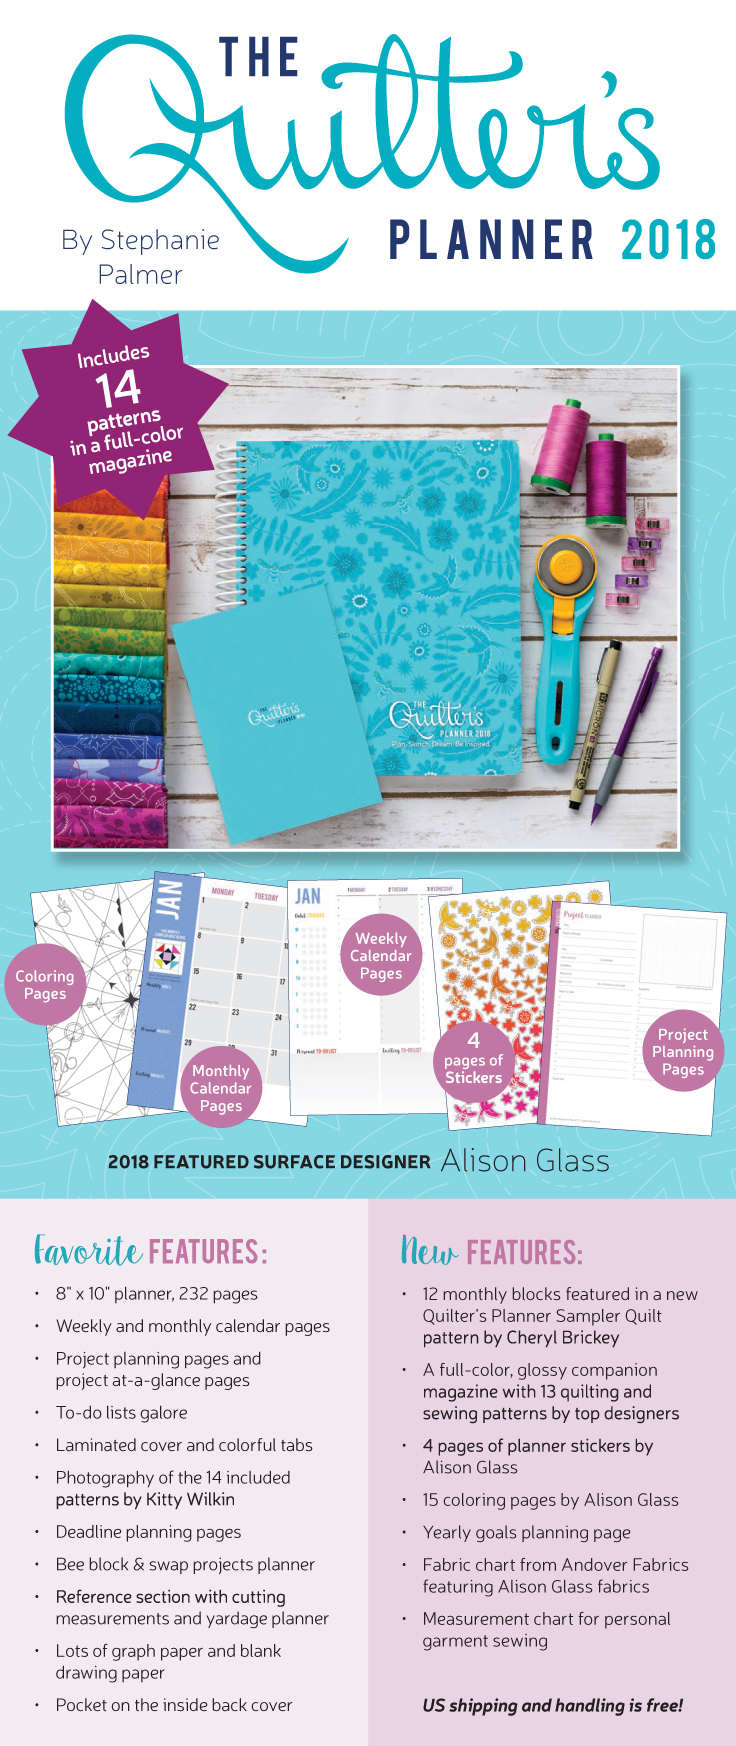 Courstesy of The Quilter's Planner